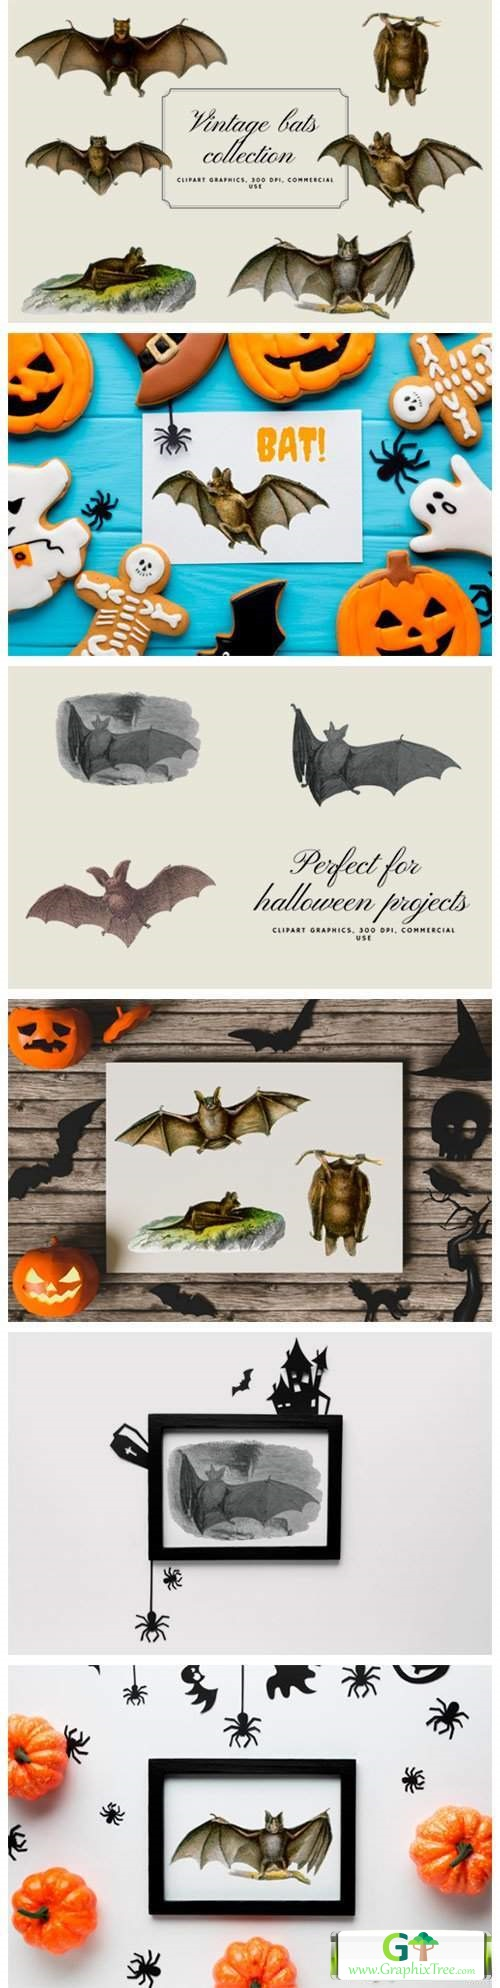 Vintage Bats Collection, Creepy Graphics [Vector] [Animals & Cartoons]